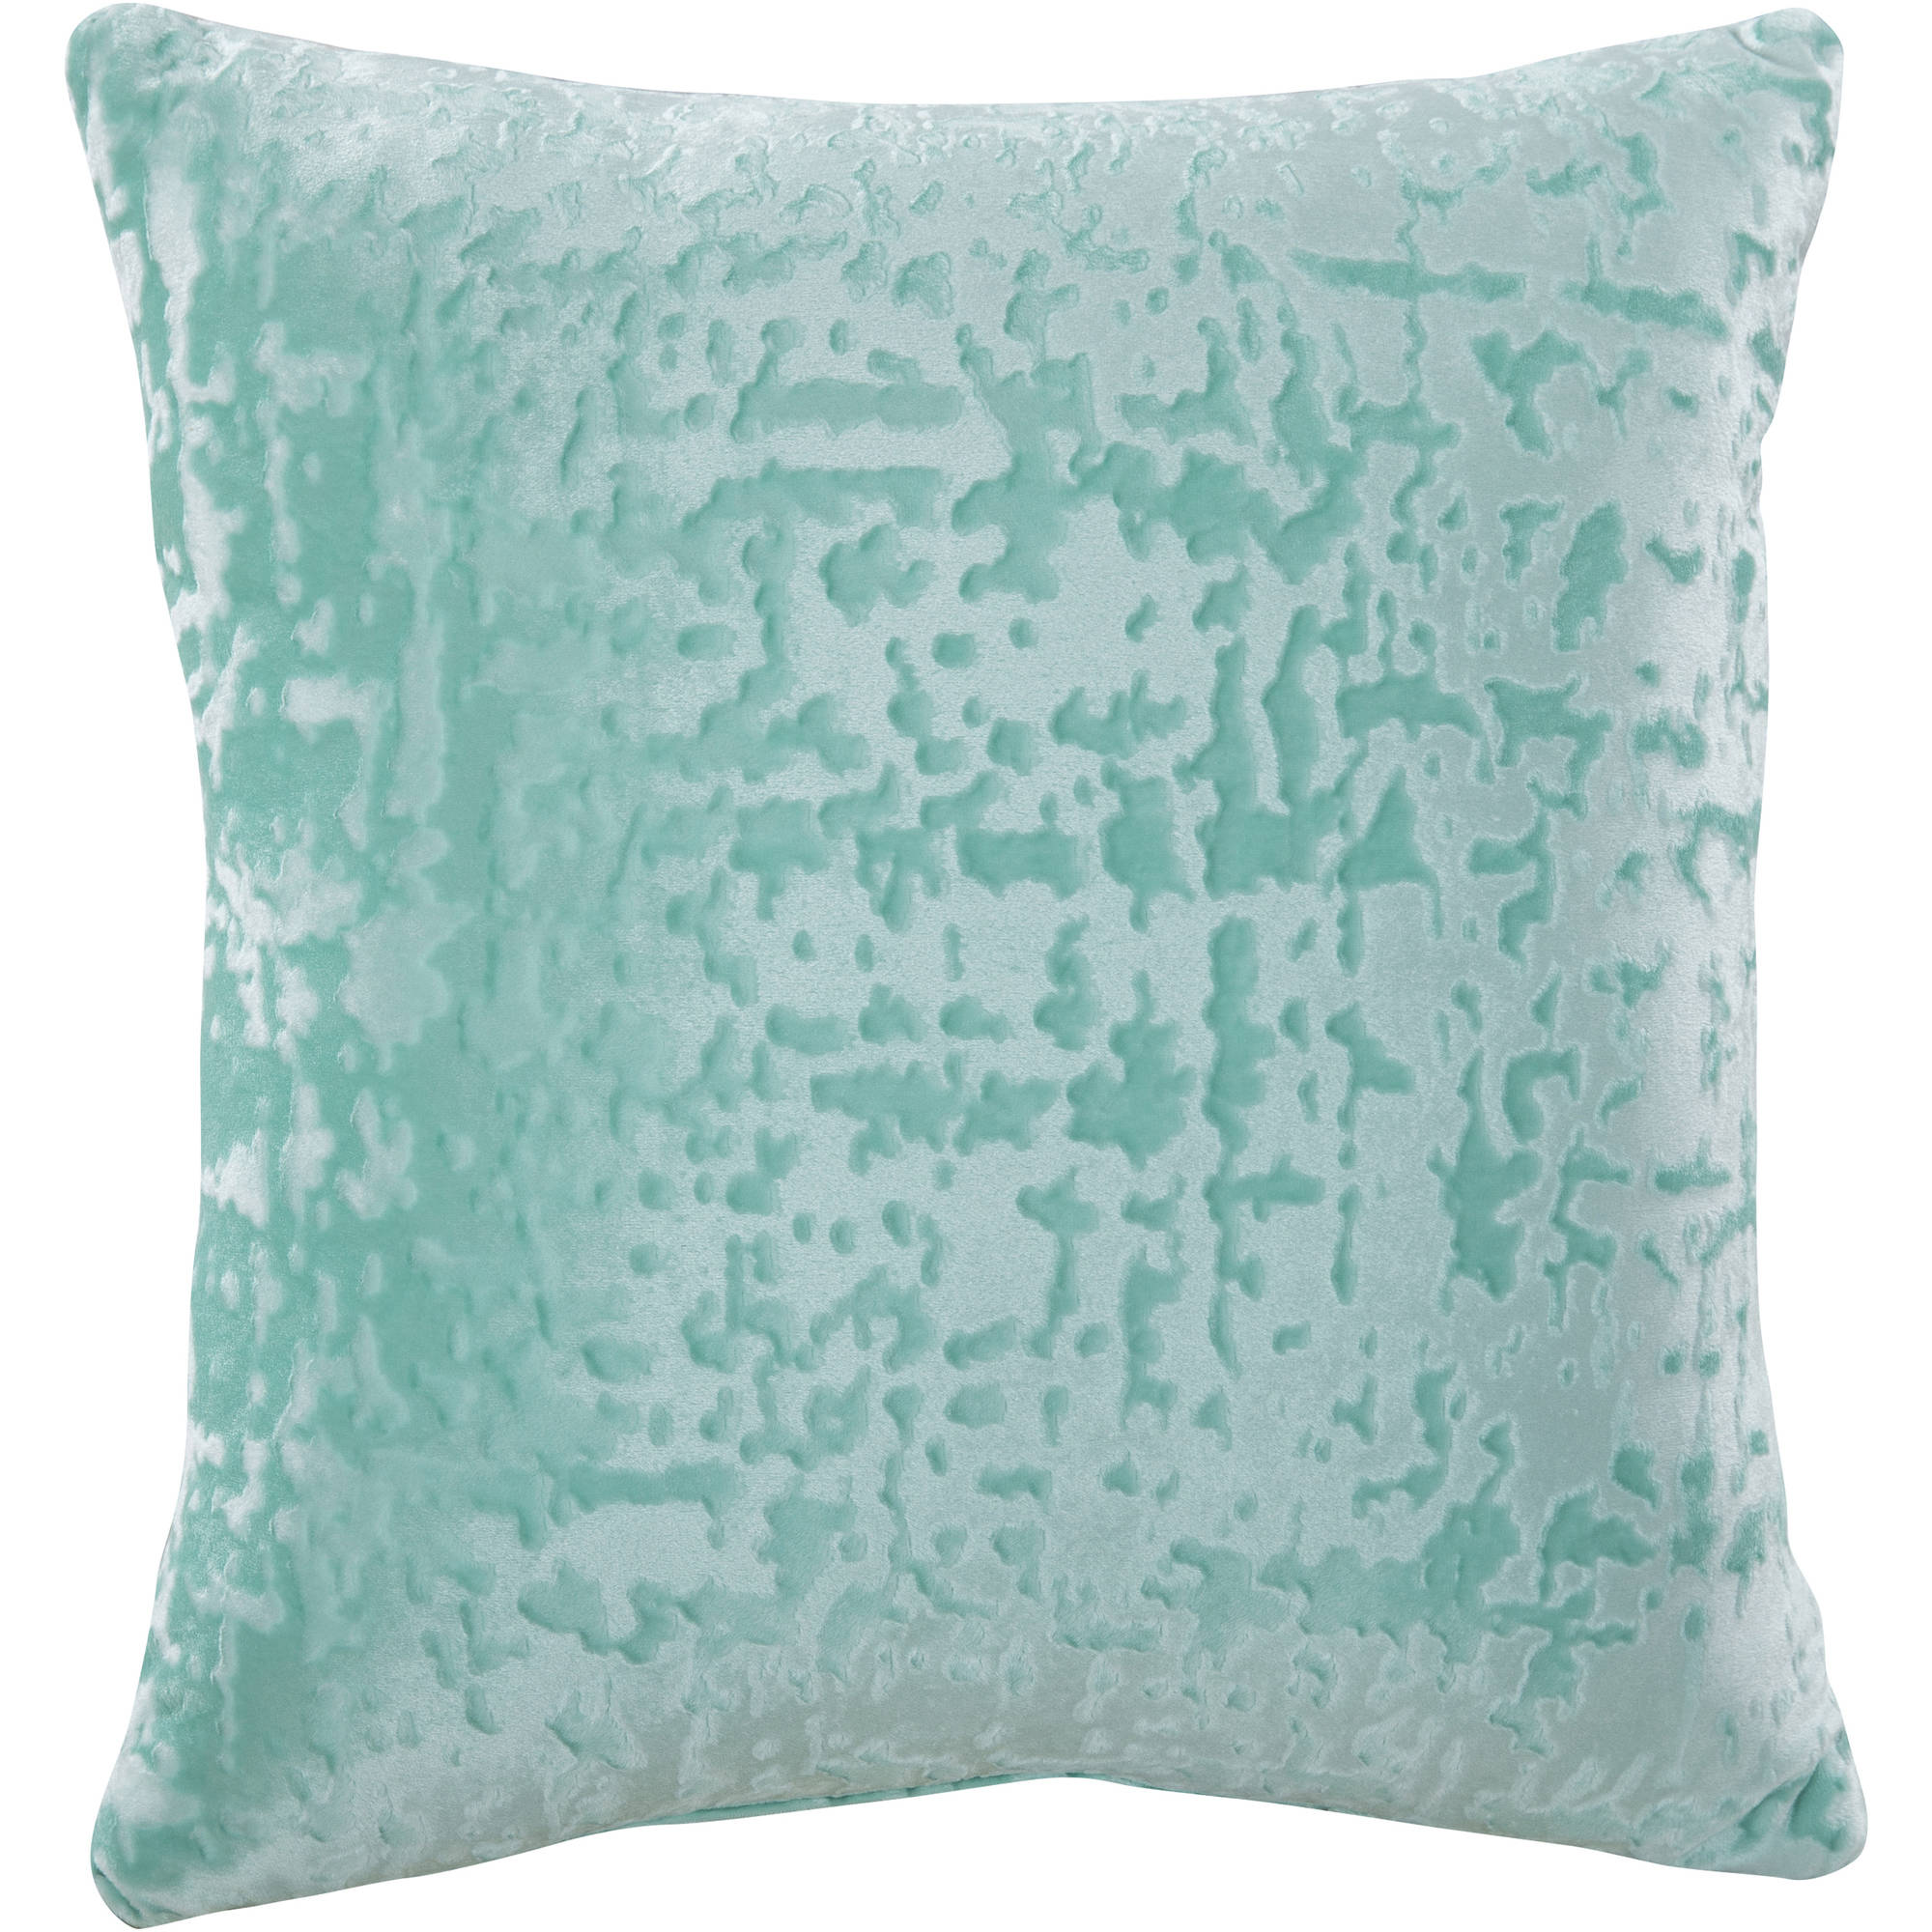 Bed rest pillow walmart - Decorative Pillows